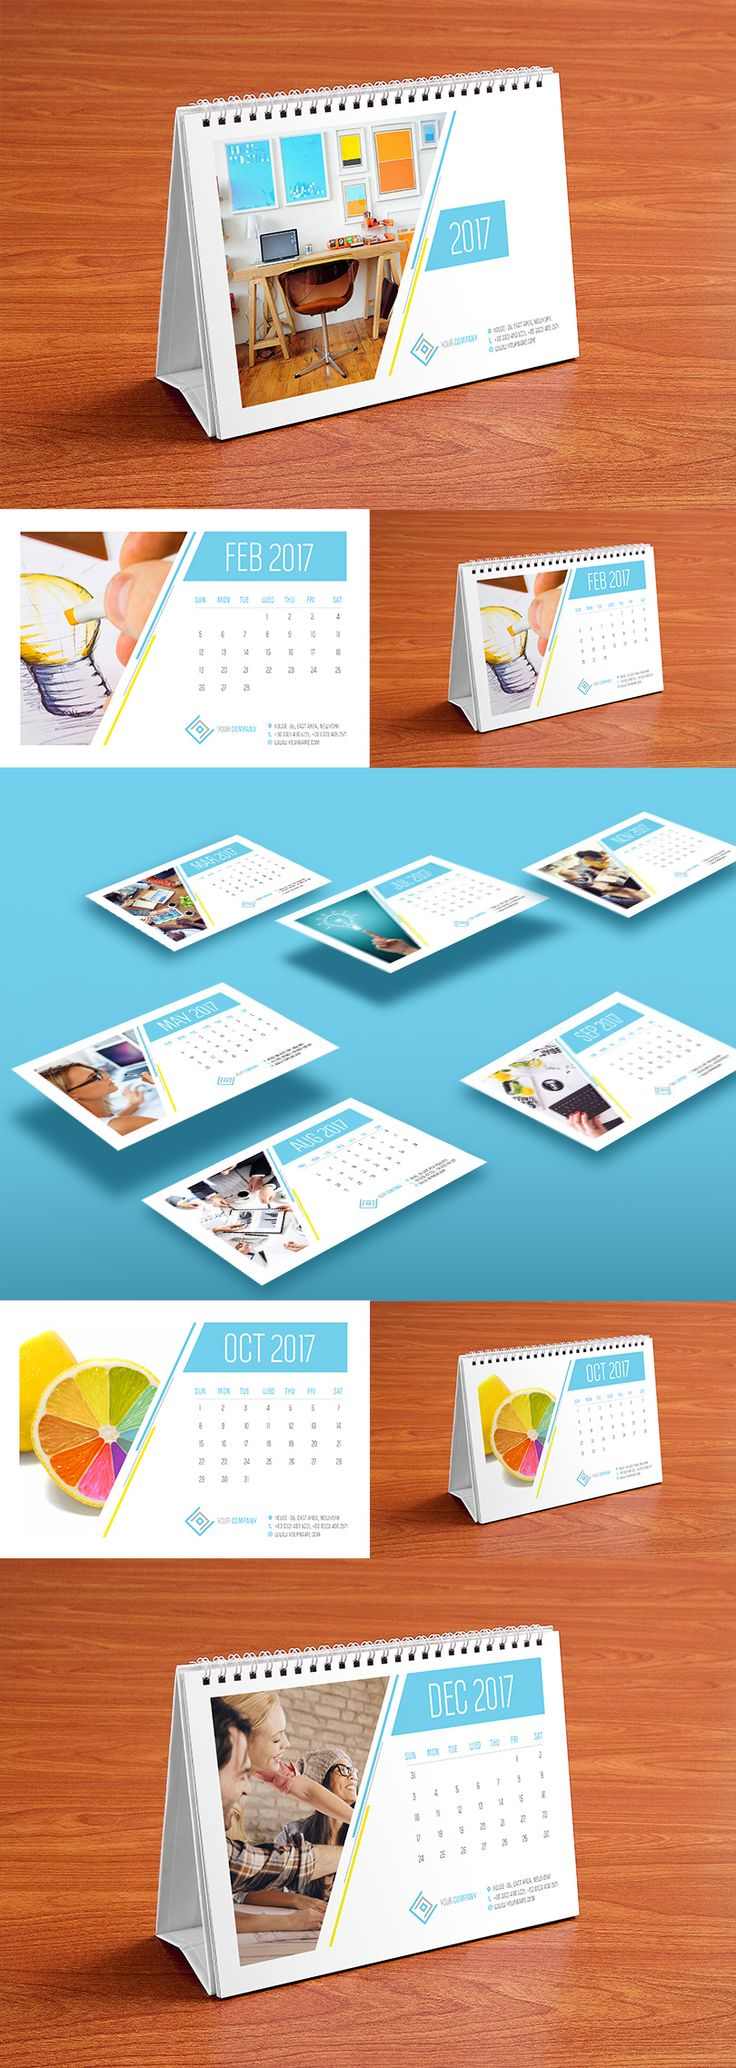 Table Calendar Design Template and Mock-up PSD 2017